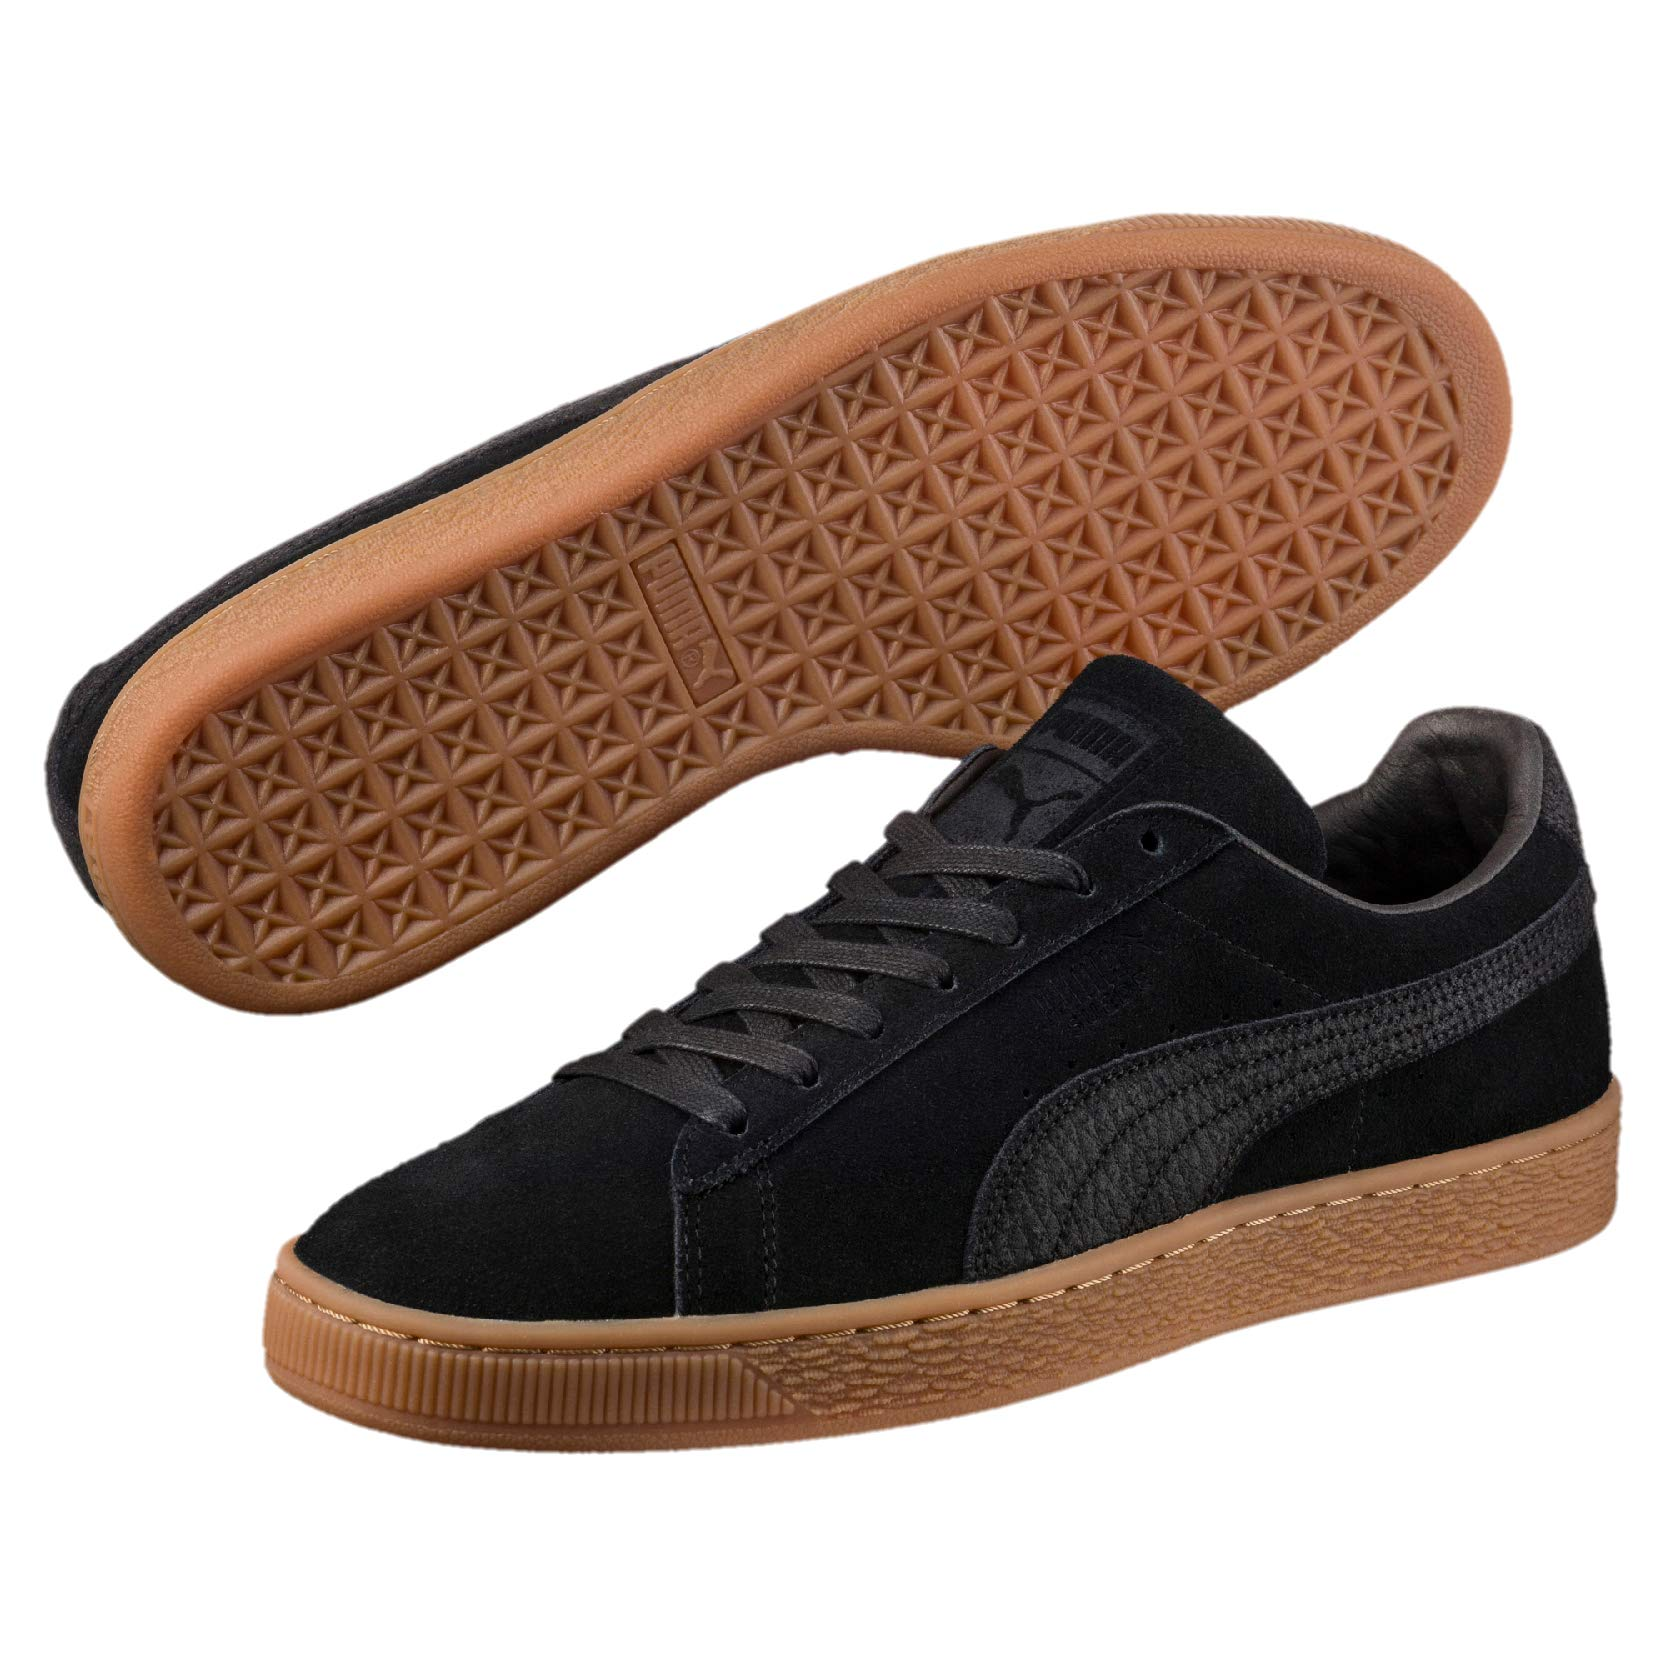 sports shoes 942a9 59504 Puma Unisex – Adult Suede Classic Natural Warmth Sneaker